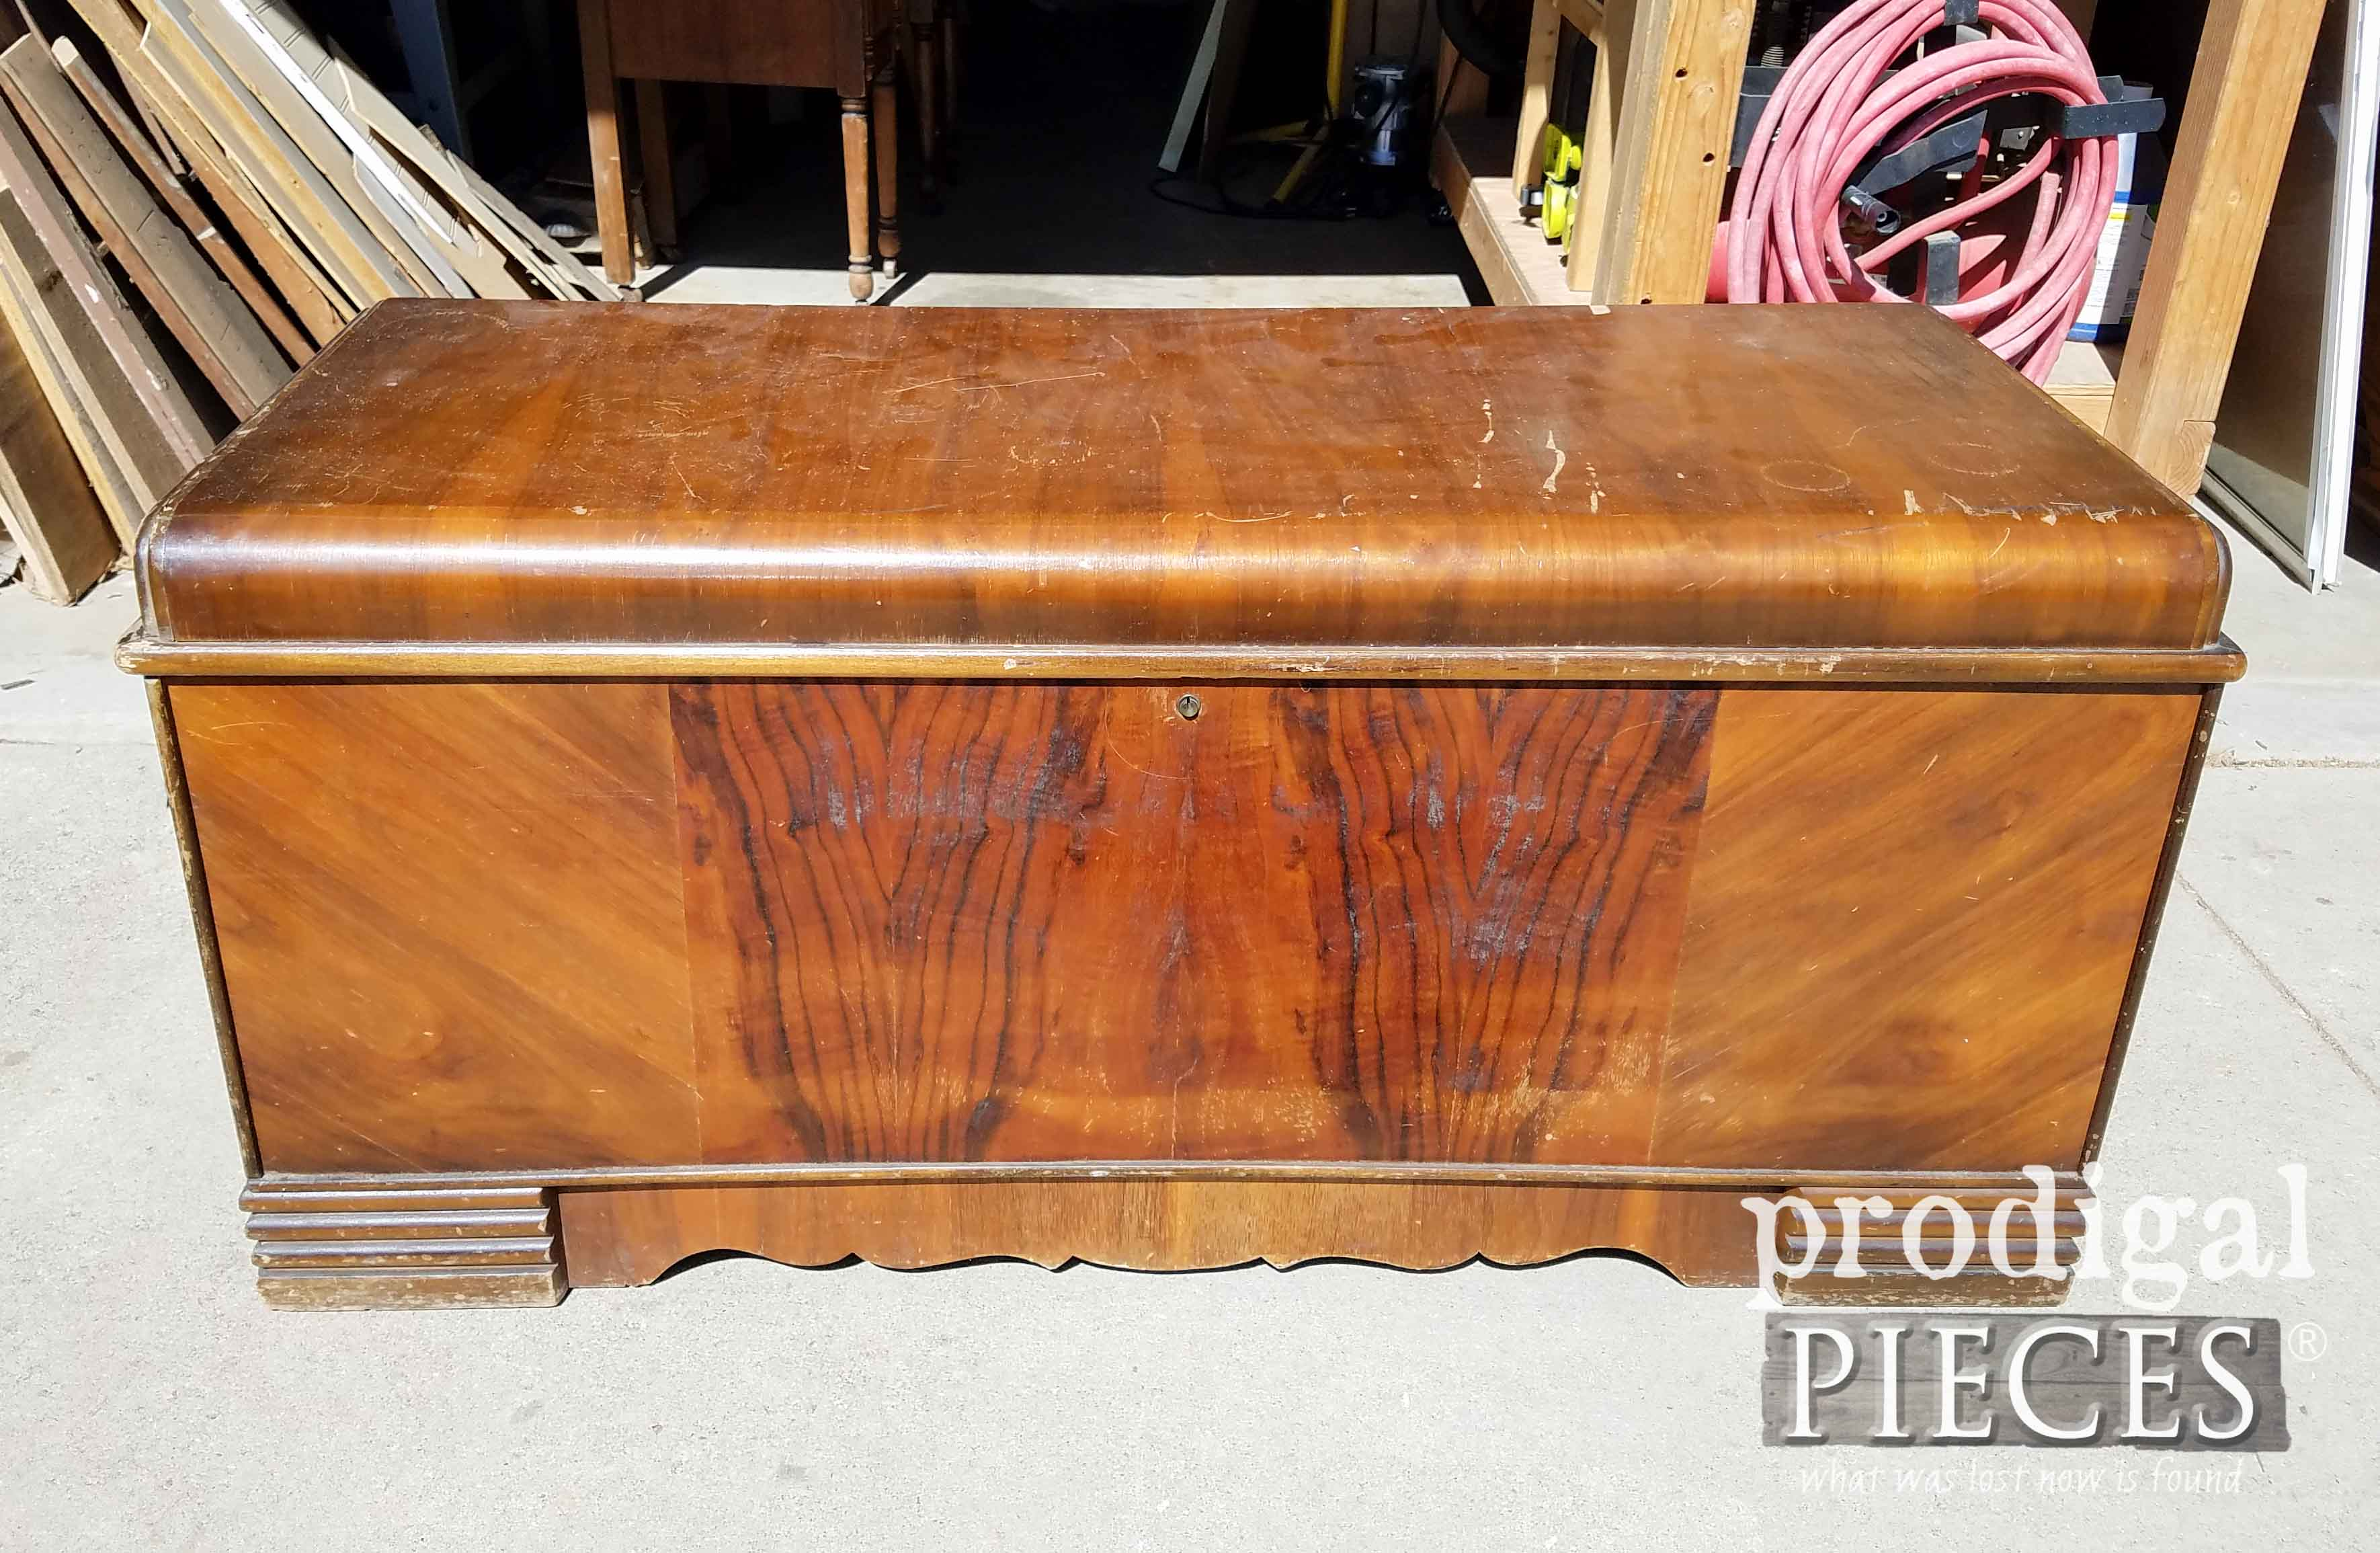 Vintage Waterfall Hope Chest Before Makeover By Prodigal Pieces Prodigalpieces